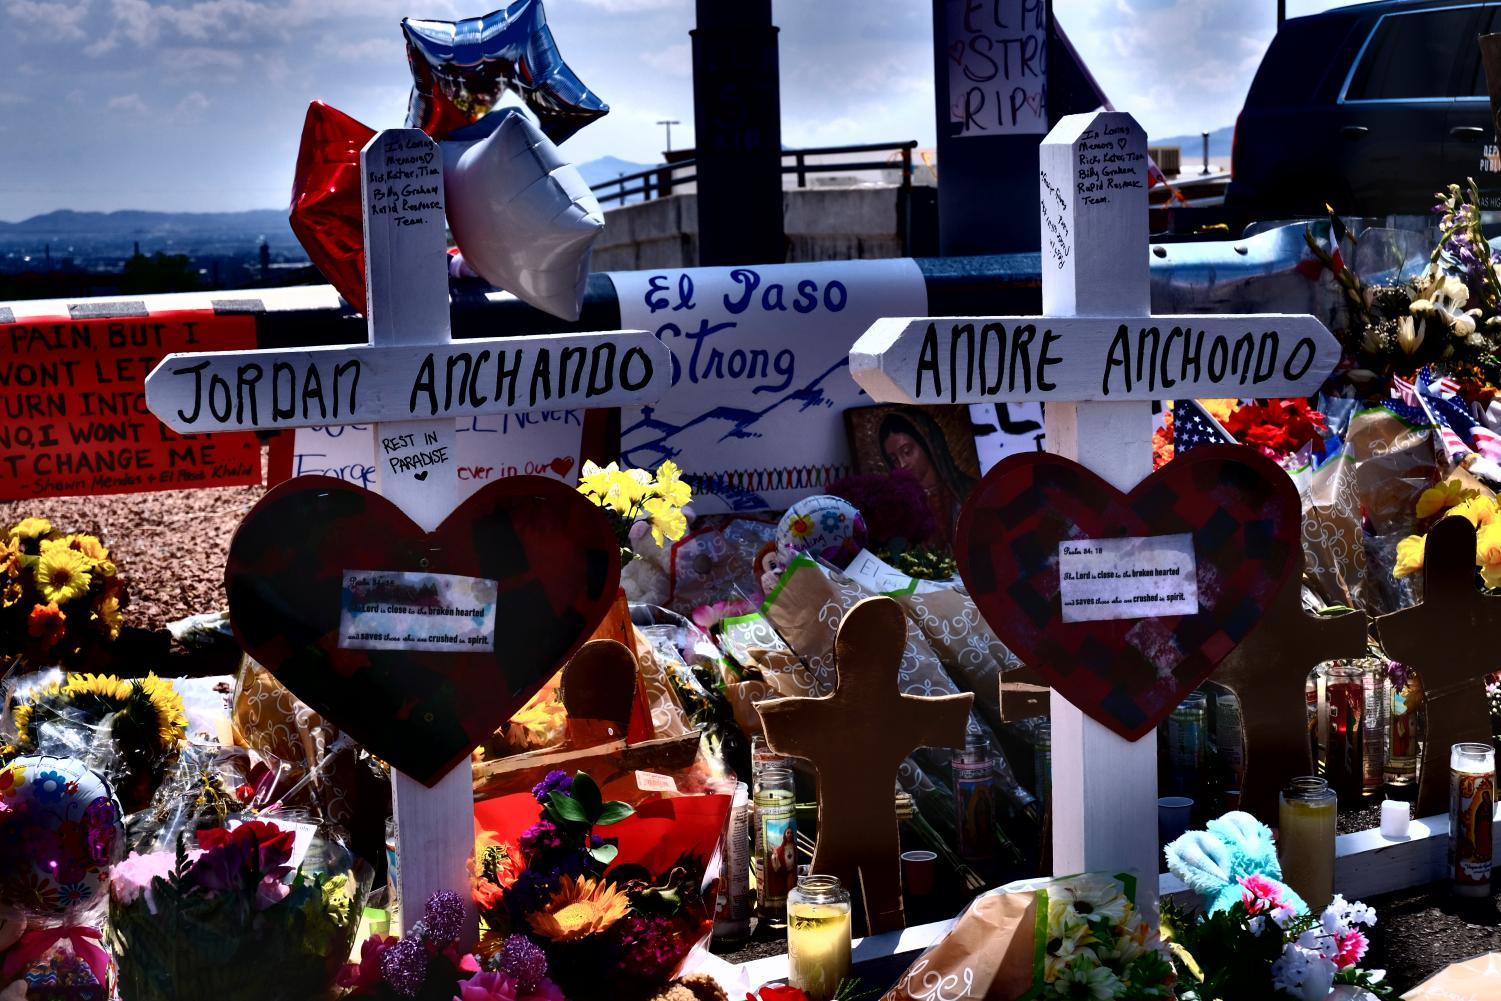 Memorials for the victims of Saturday's shooting have been created near the Cielo Vista Wal-Mart.